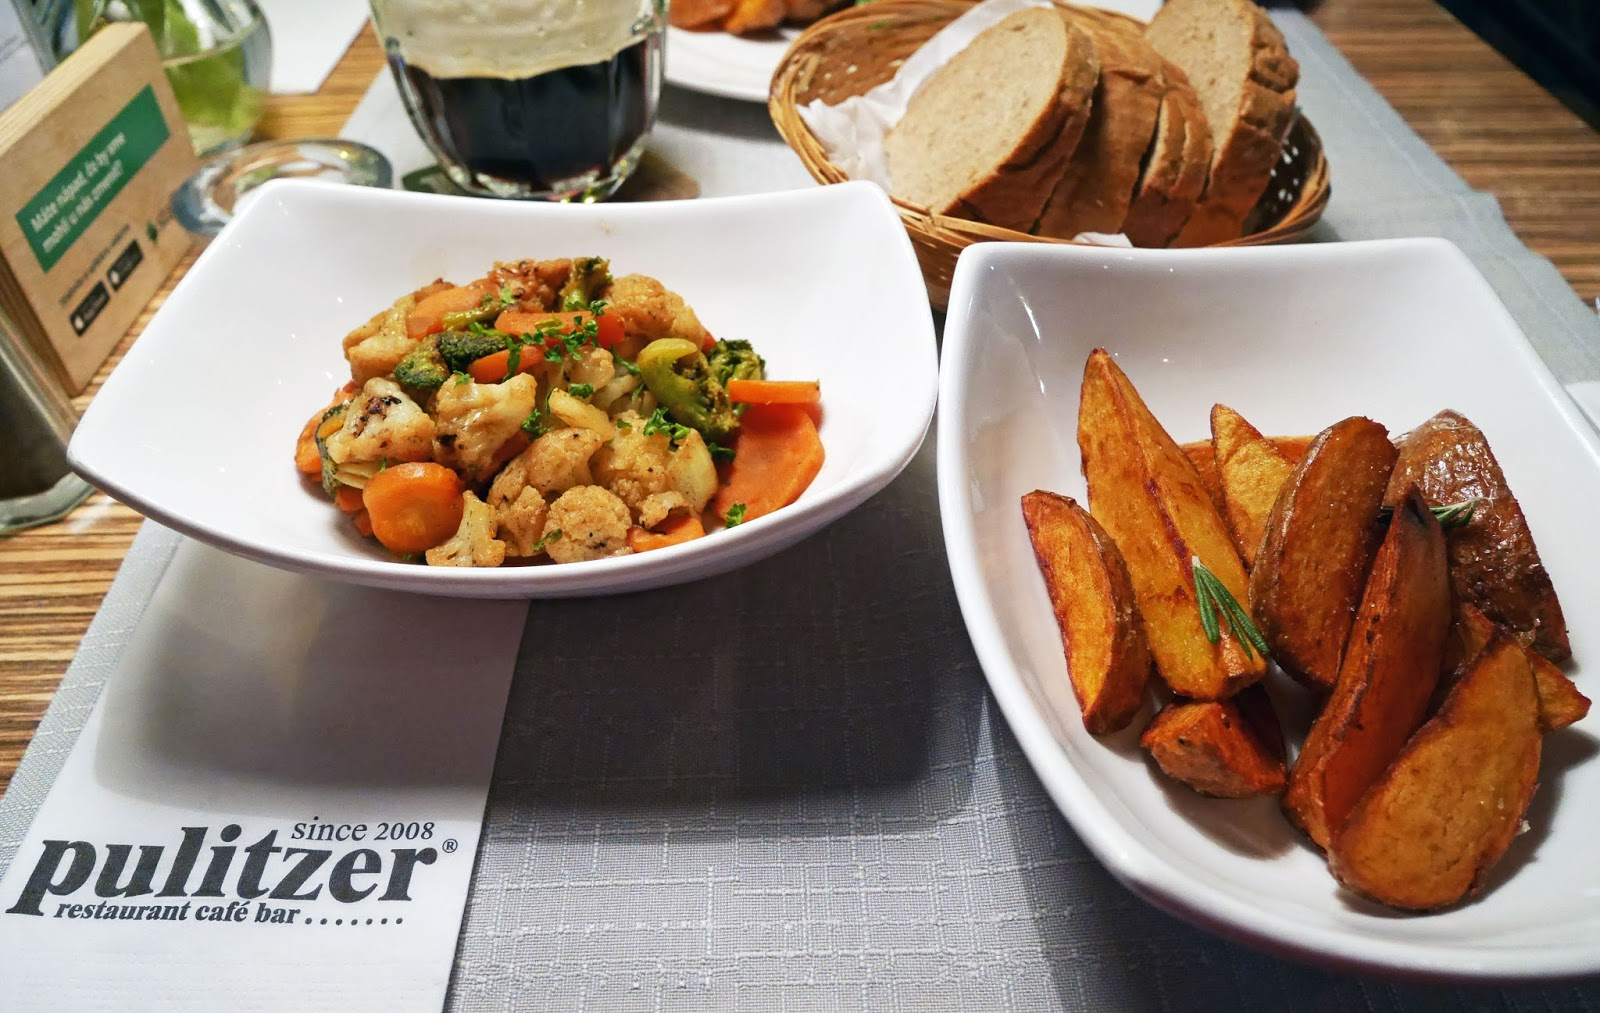 Mixed vegetables, spiced potato wedges and bread at Pulitzer: a lovely restaurant on the edge of Bratislava's Old Town